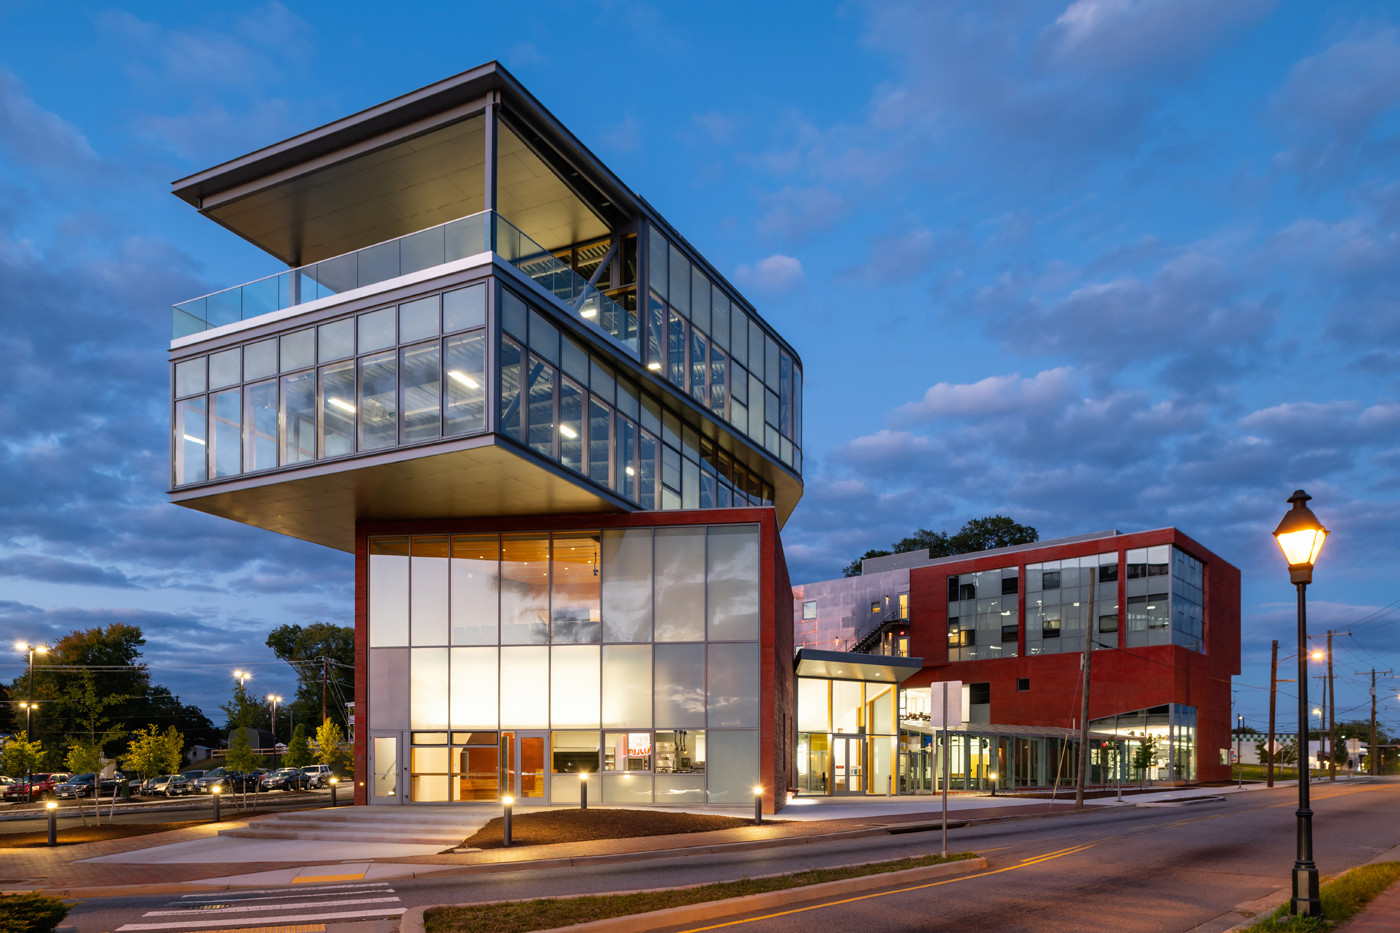 The Culinary School activates 1st & 2nd floors. Workforce apartments sit above the east arm. Community offices & destination restaurant reach off the west arm toward downtown Richmond.